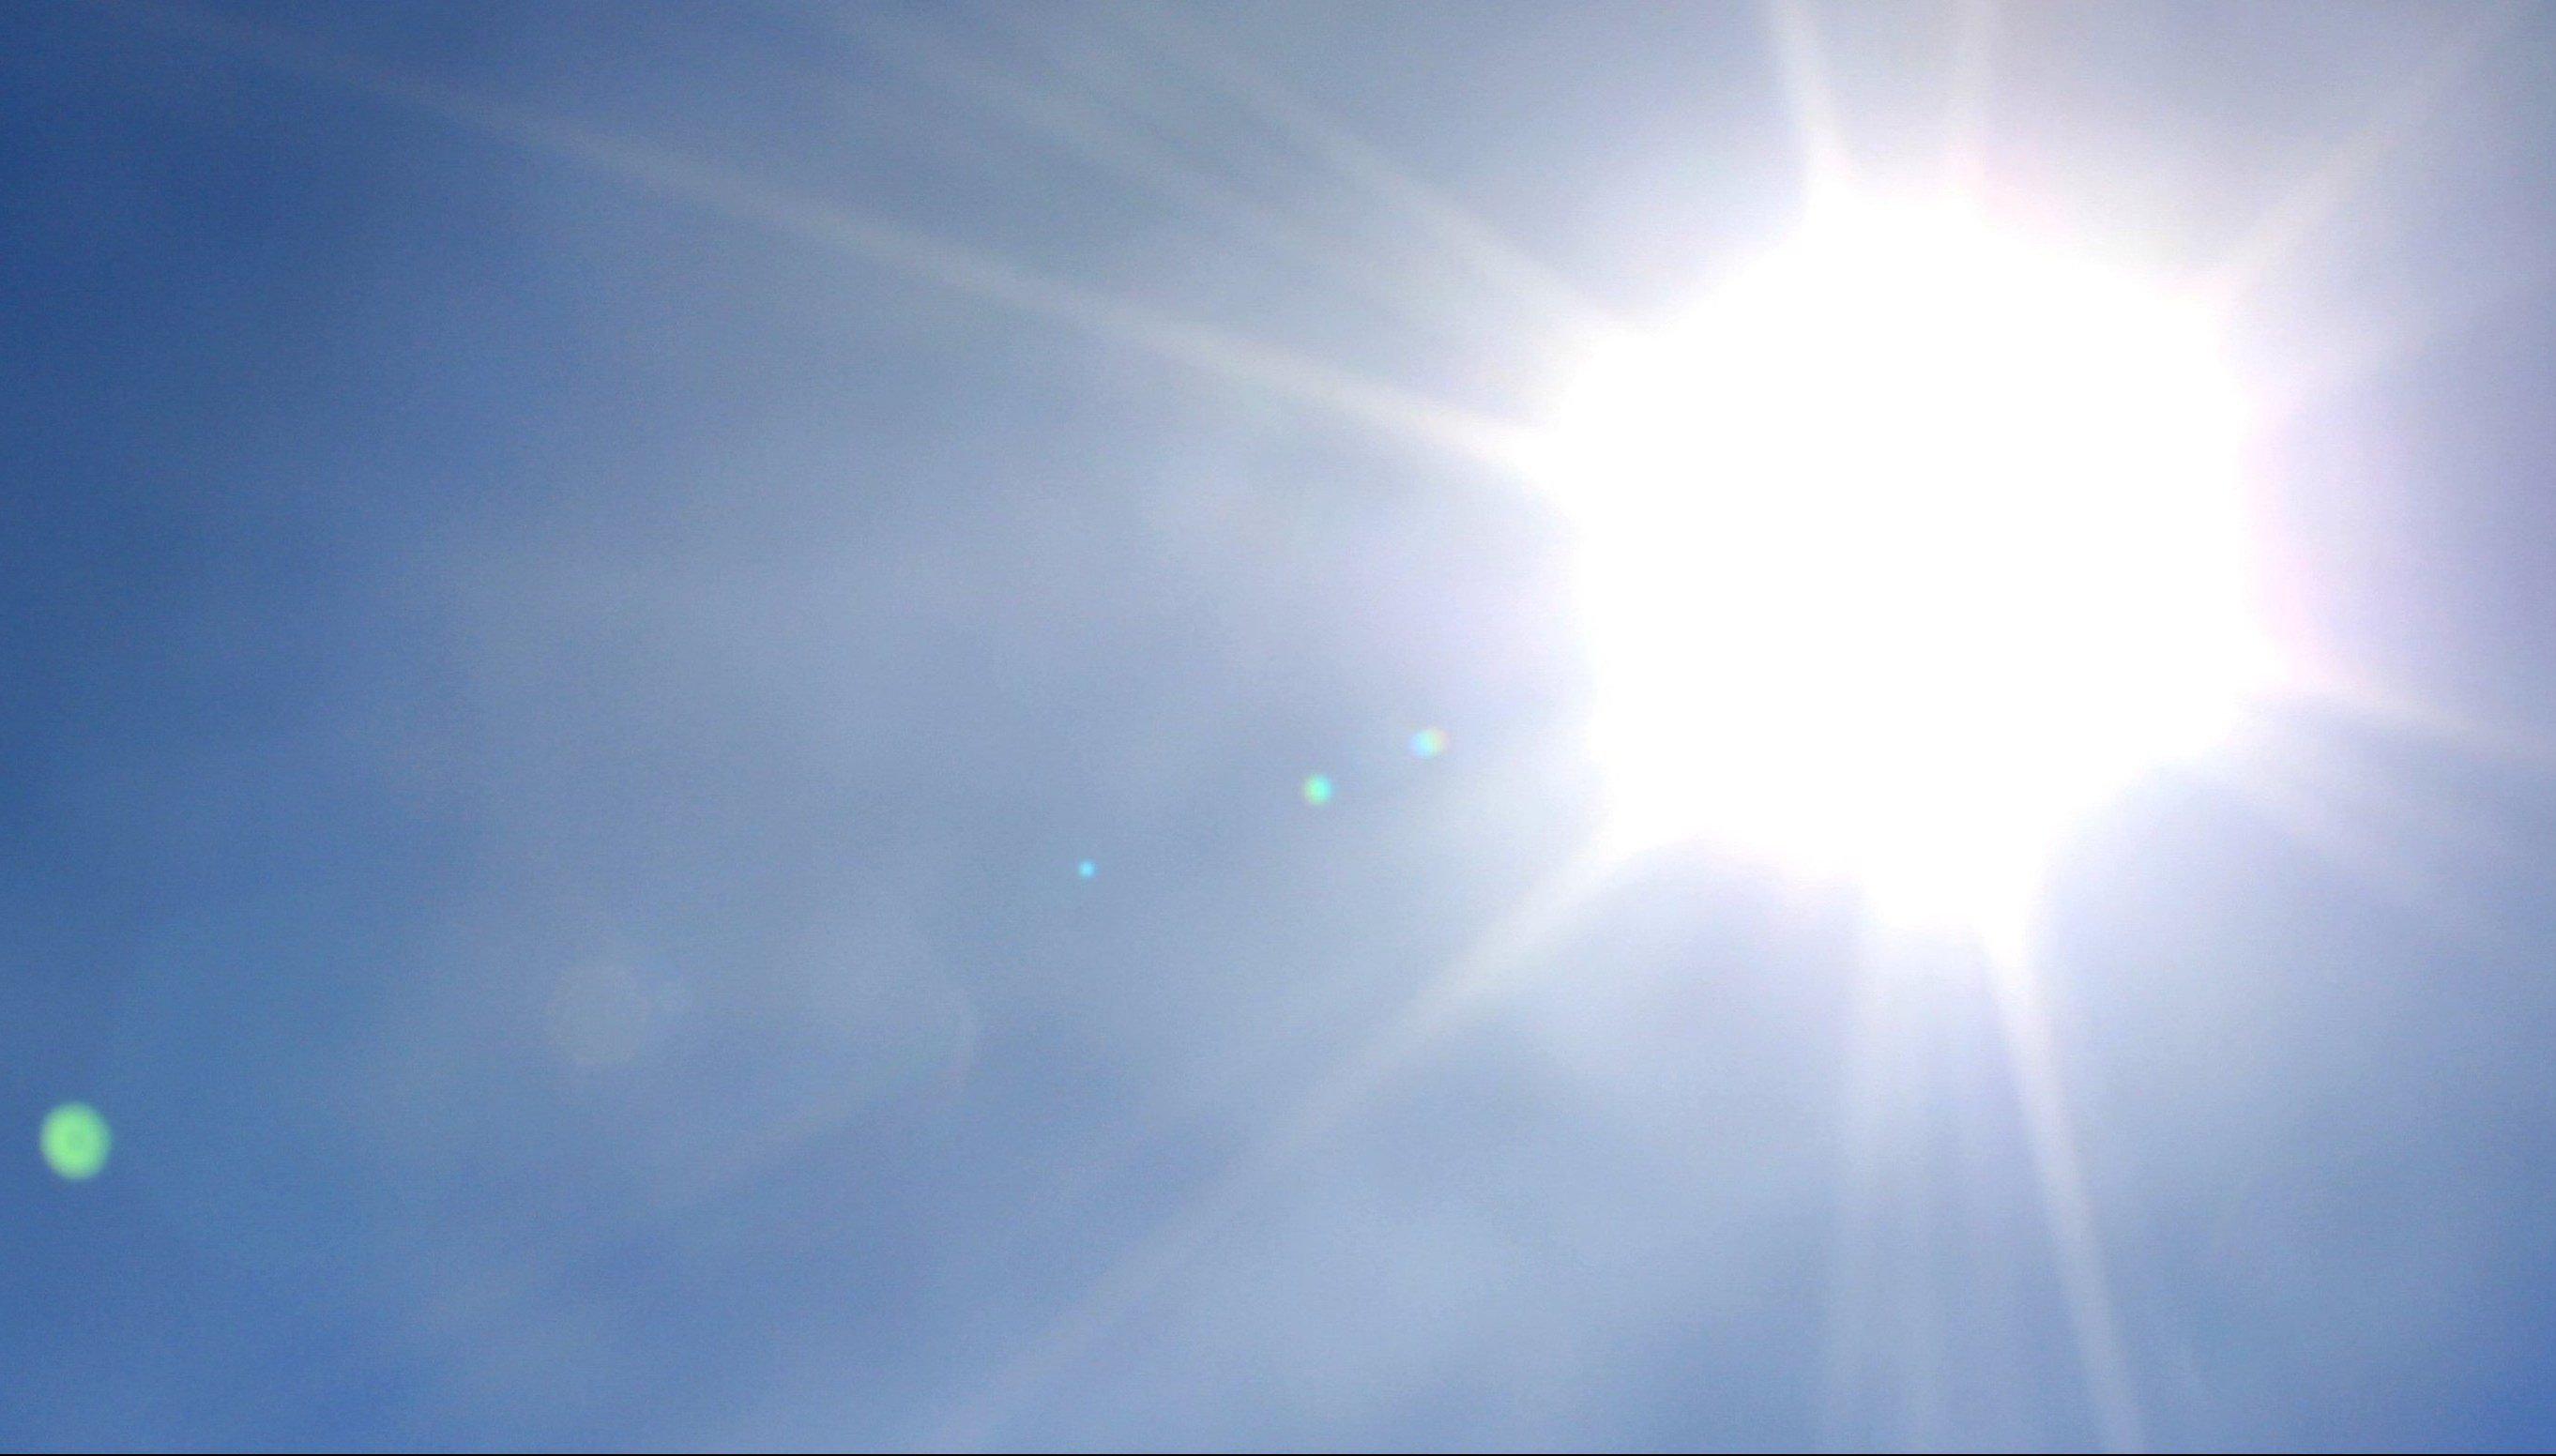 This September could torch temperature records - 570 NEWS